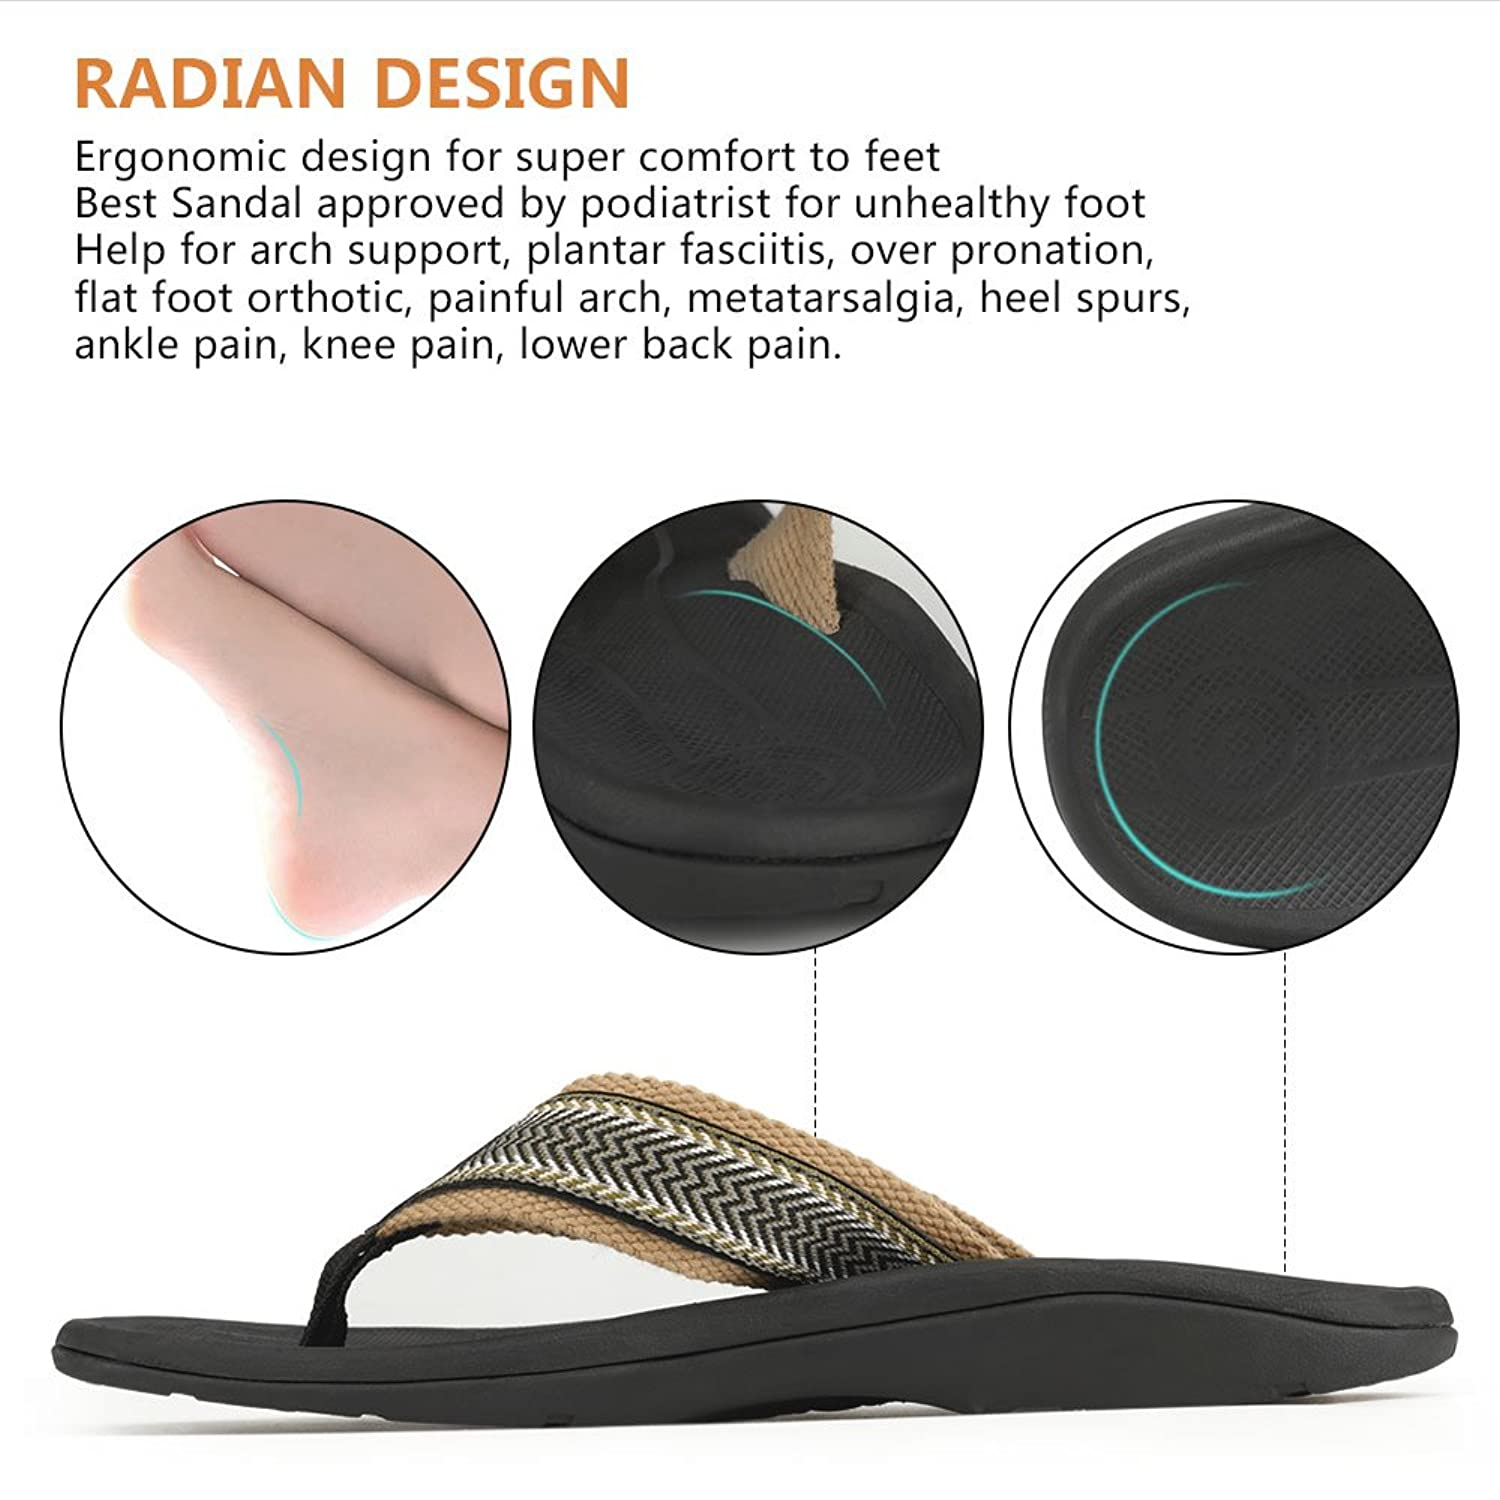 Women's sandals good for plantar fasciitis uk - Sessom Co Men S Orthotic Sandals With Great Arch Support Stylish Flip Flops Sandals For Plantar Fasciitis Amazon Co Uk Shoes Bags